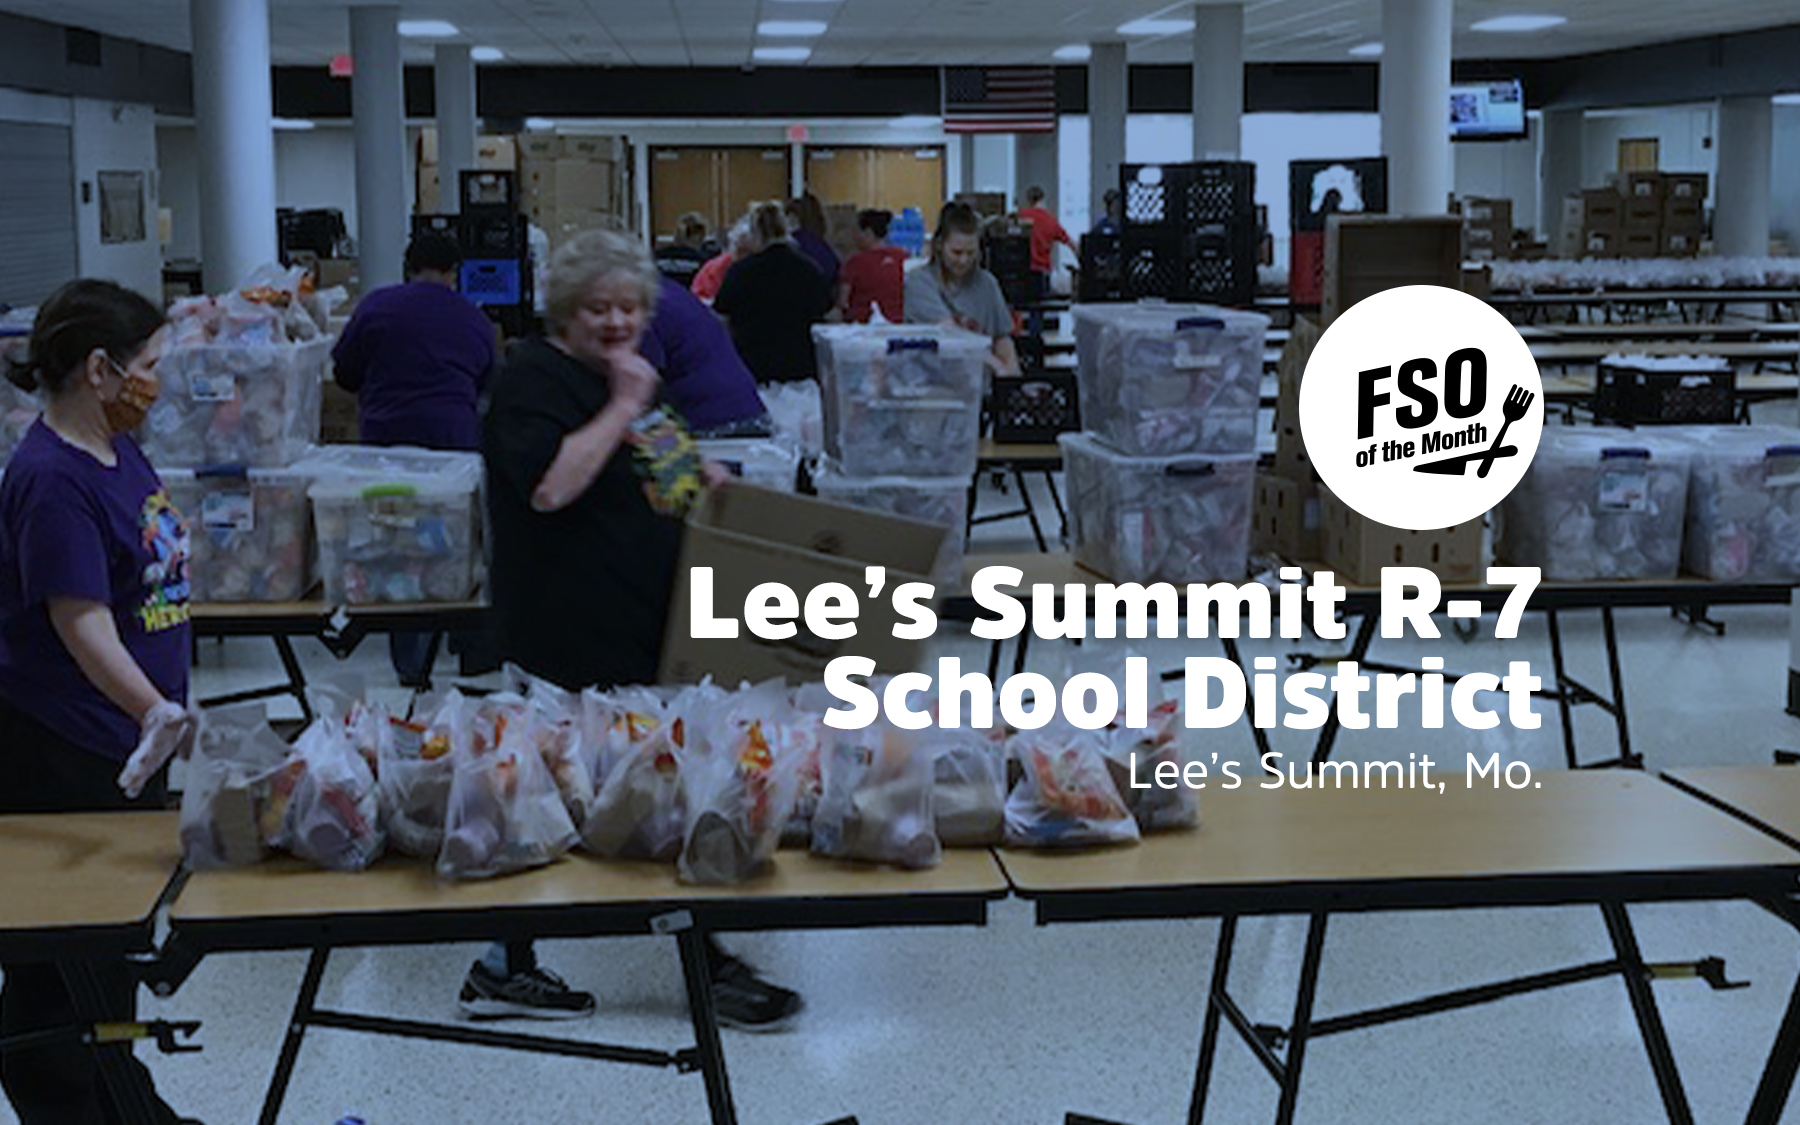 FSO Lee's Summit R-7 School District